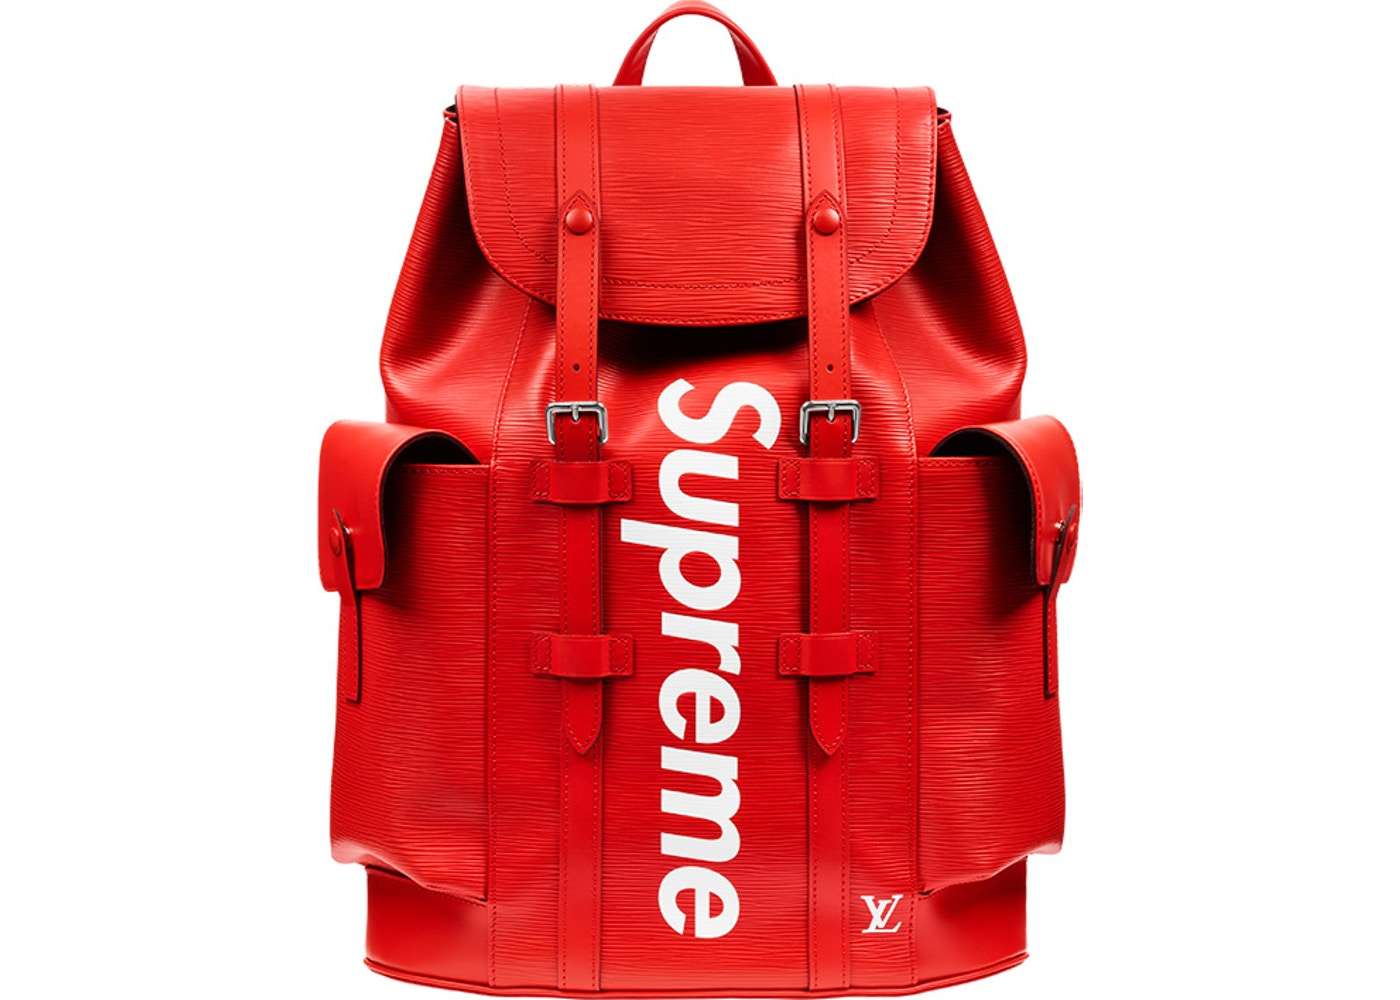 c342b68cb410 Louis Vuitton x Supreme Christopher Backpack Epi PM Red. Epi PM Red